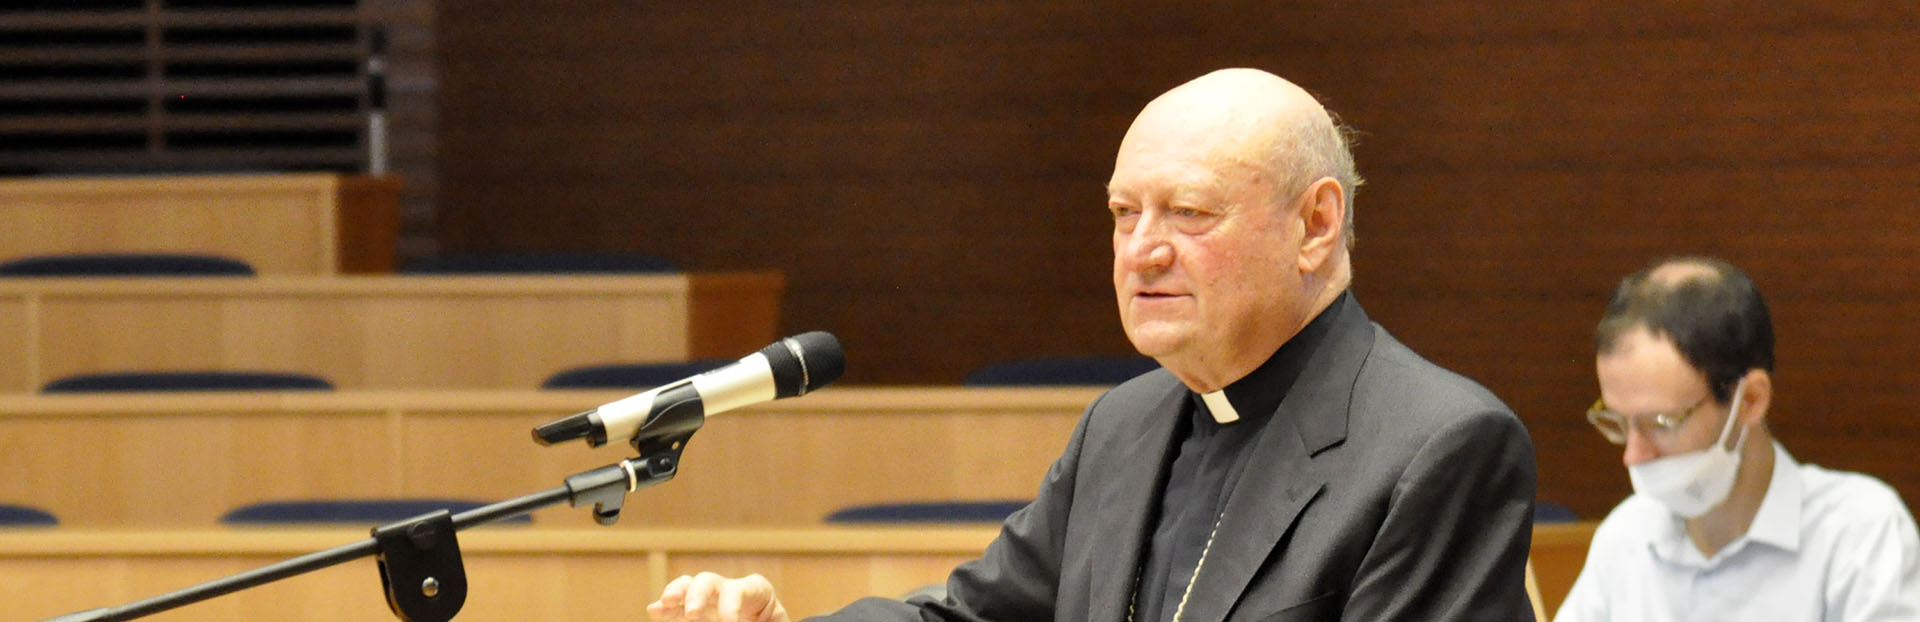 Cardinal Ravasi – Leadership and a Culture of Synodality